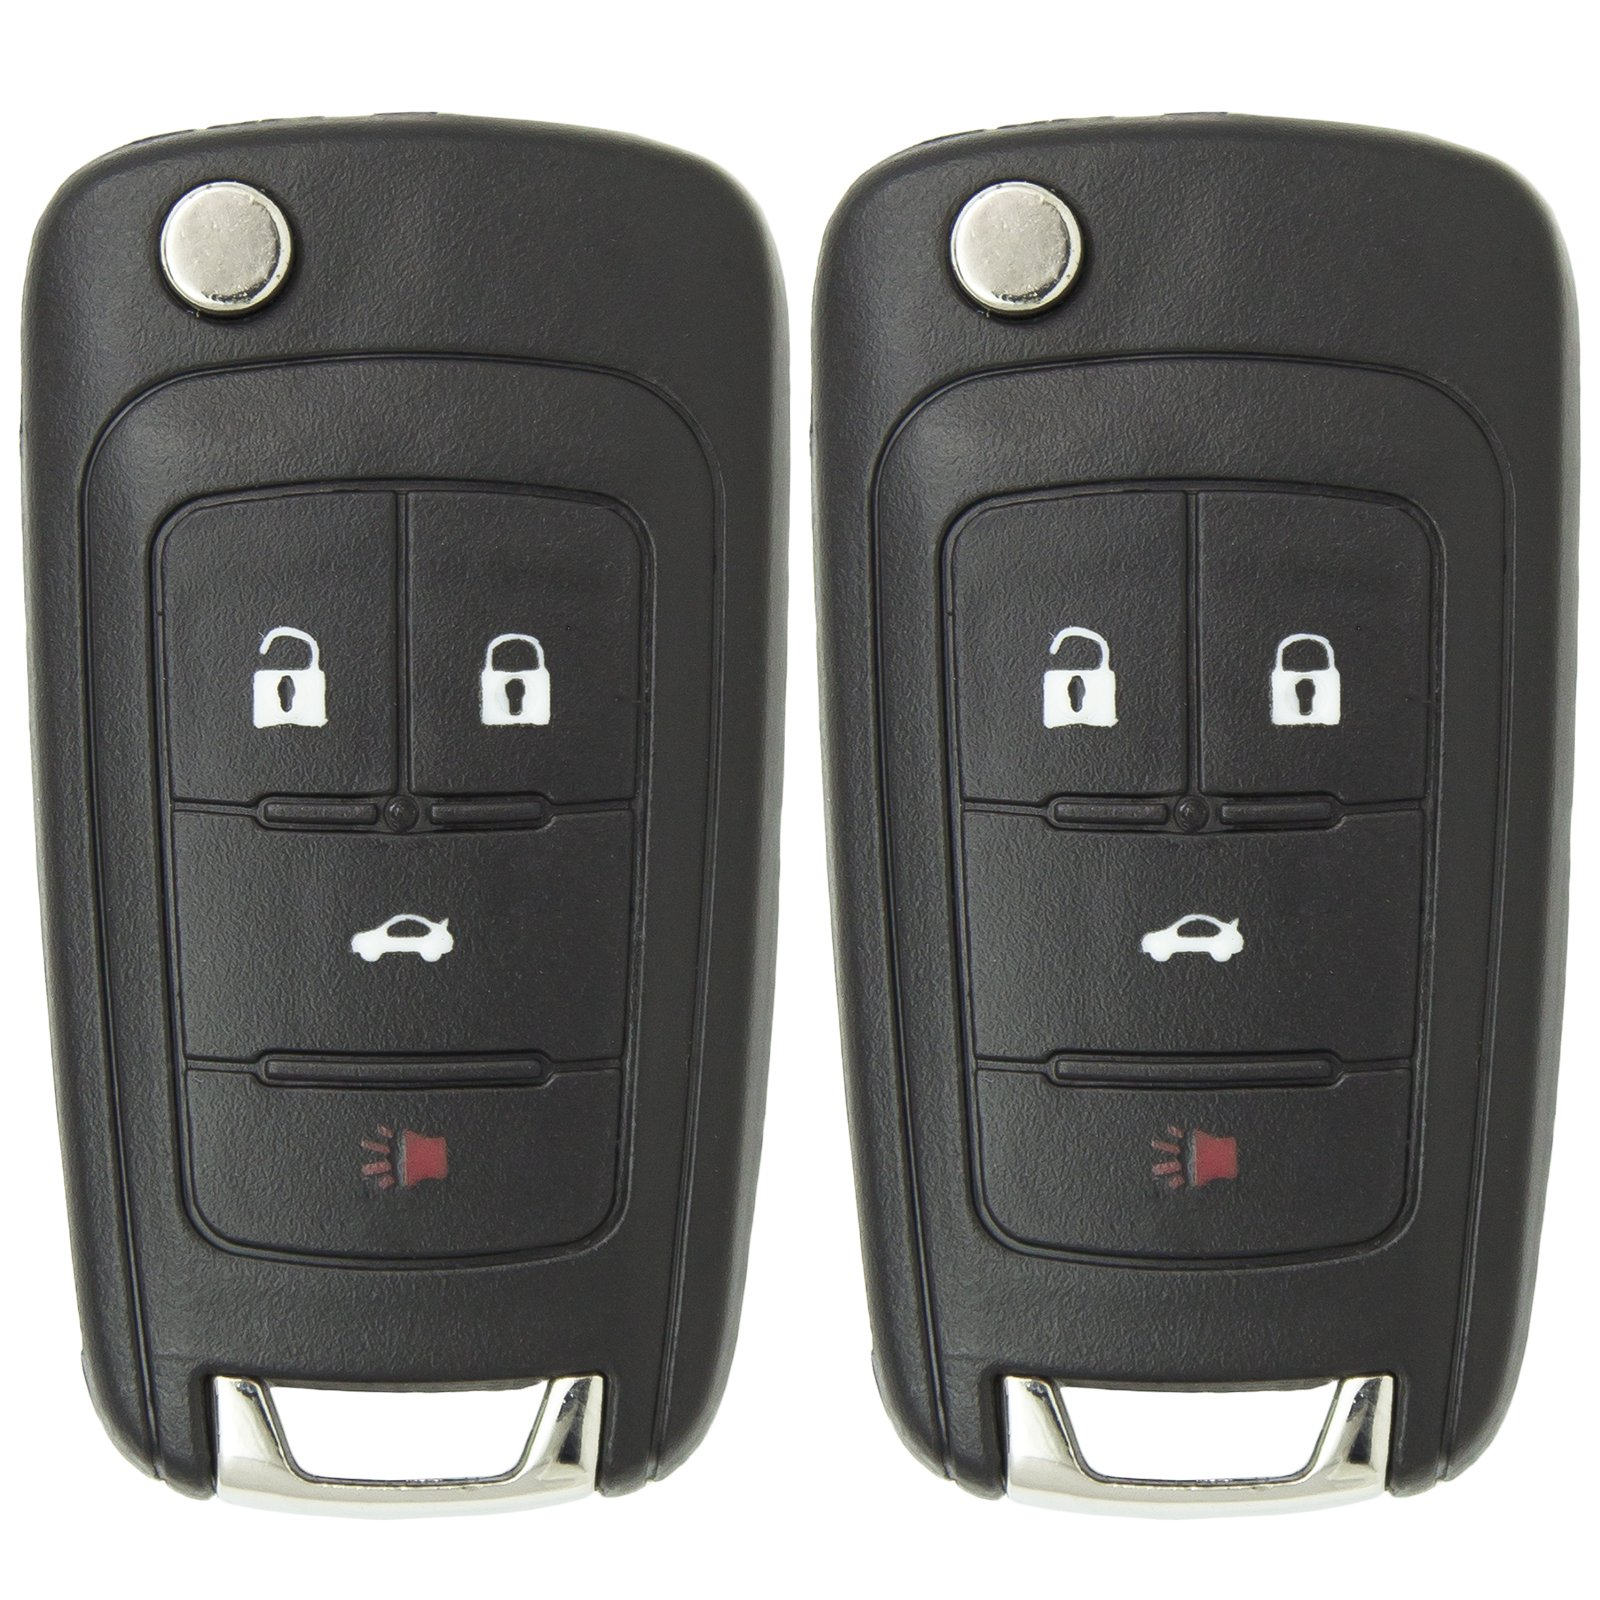 Keyless2Go New Keyless Remote 4 Button Flip Car Key Fob for Equinox Verano Sonic and Other Vehicles That Use FCC OHT01060512 (2 Pack) by Keyless2Go